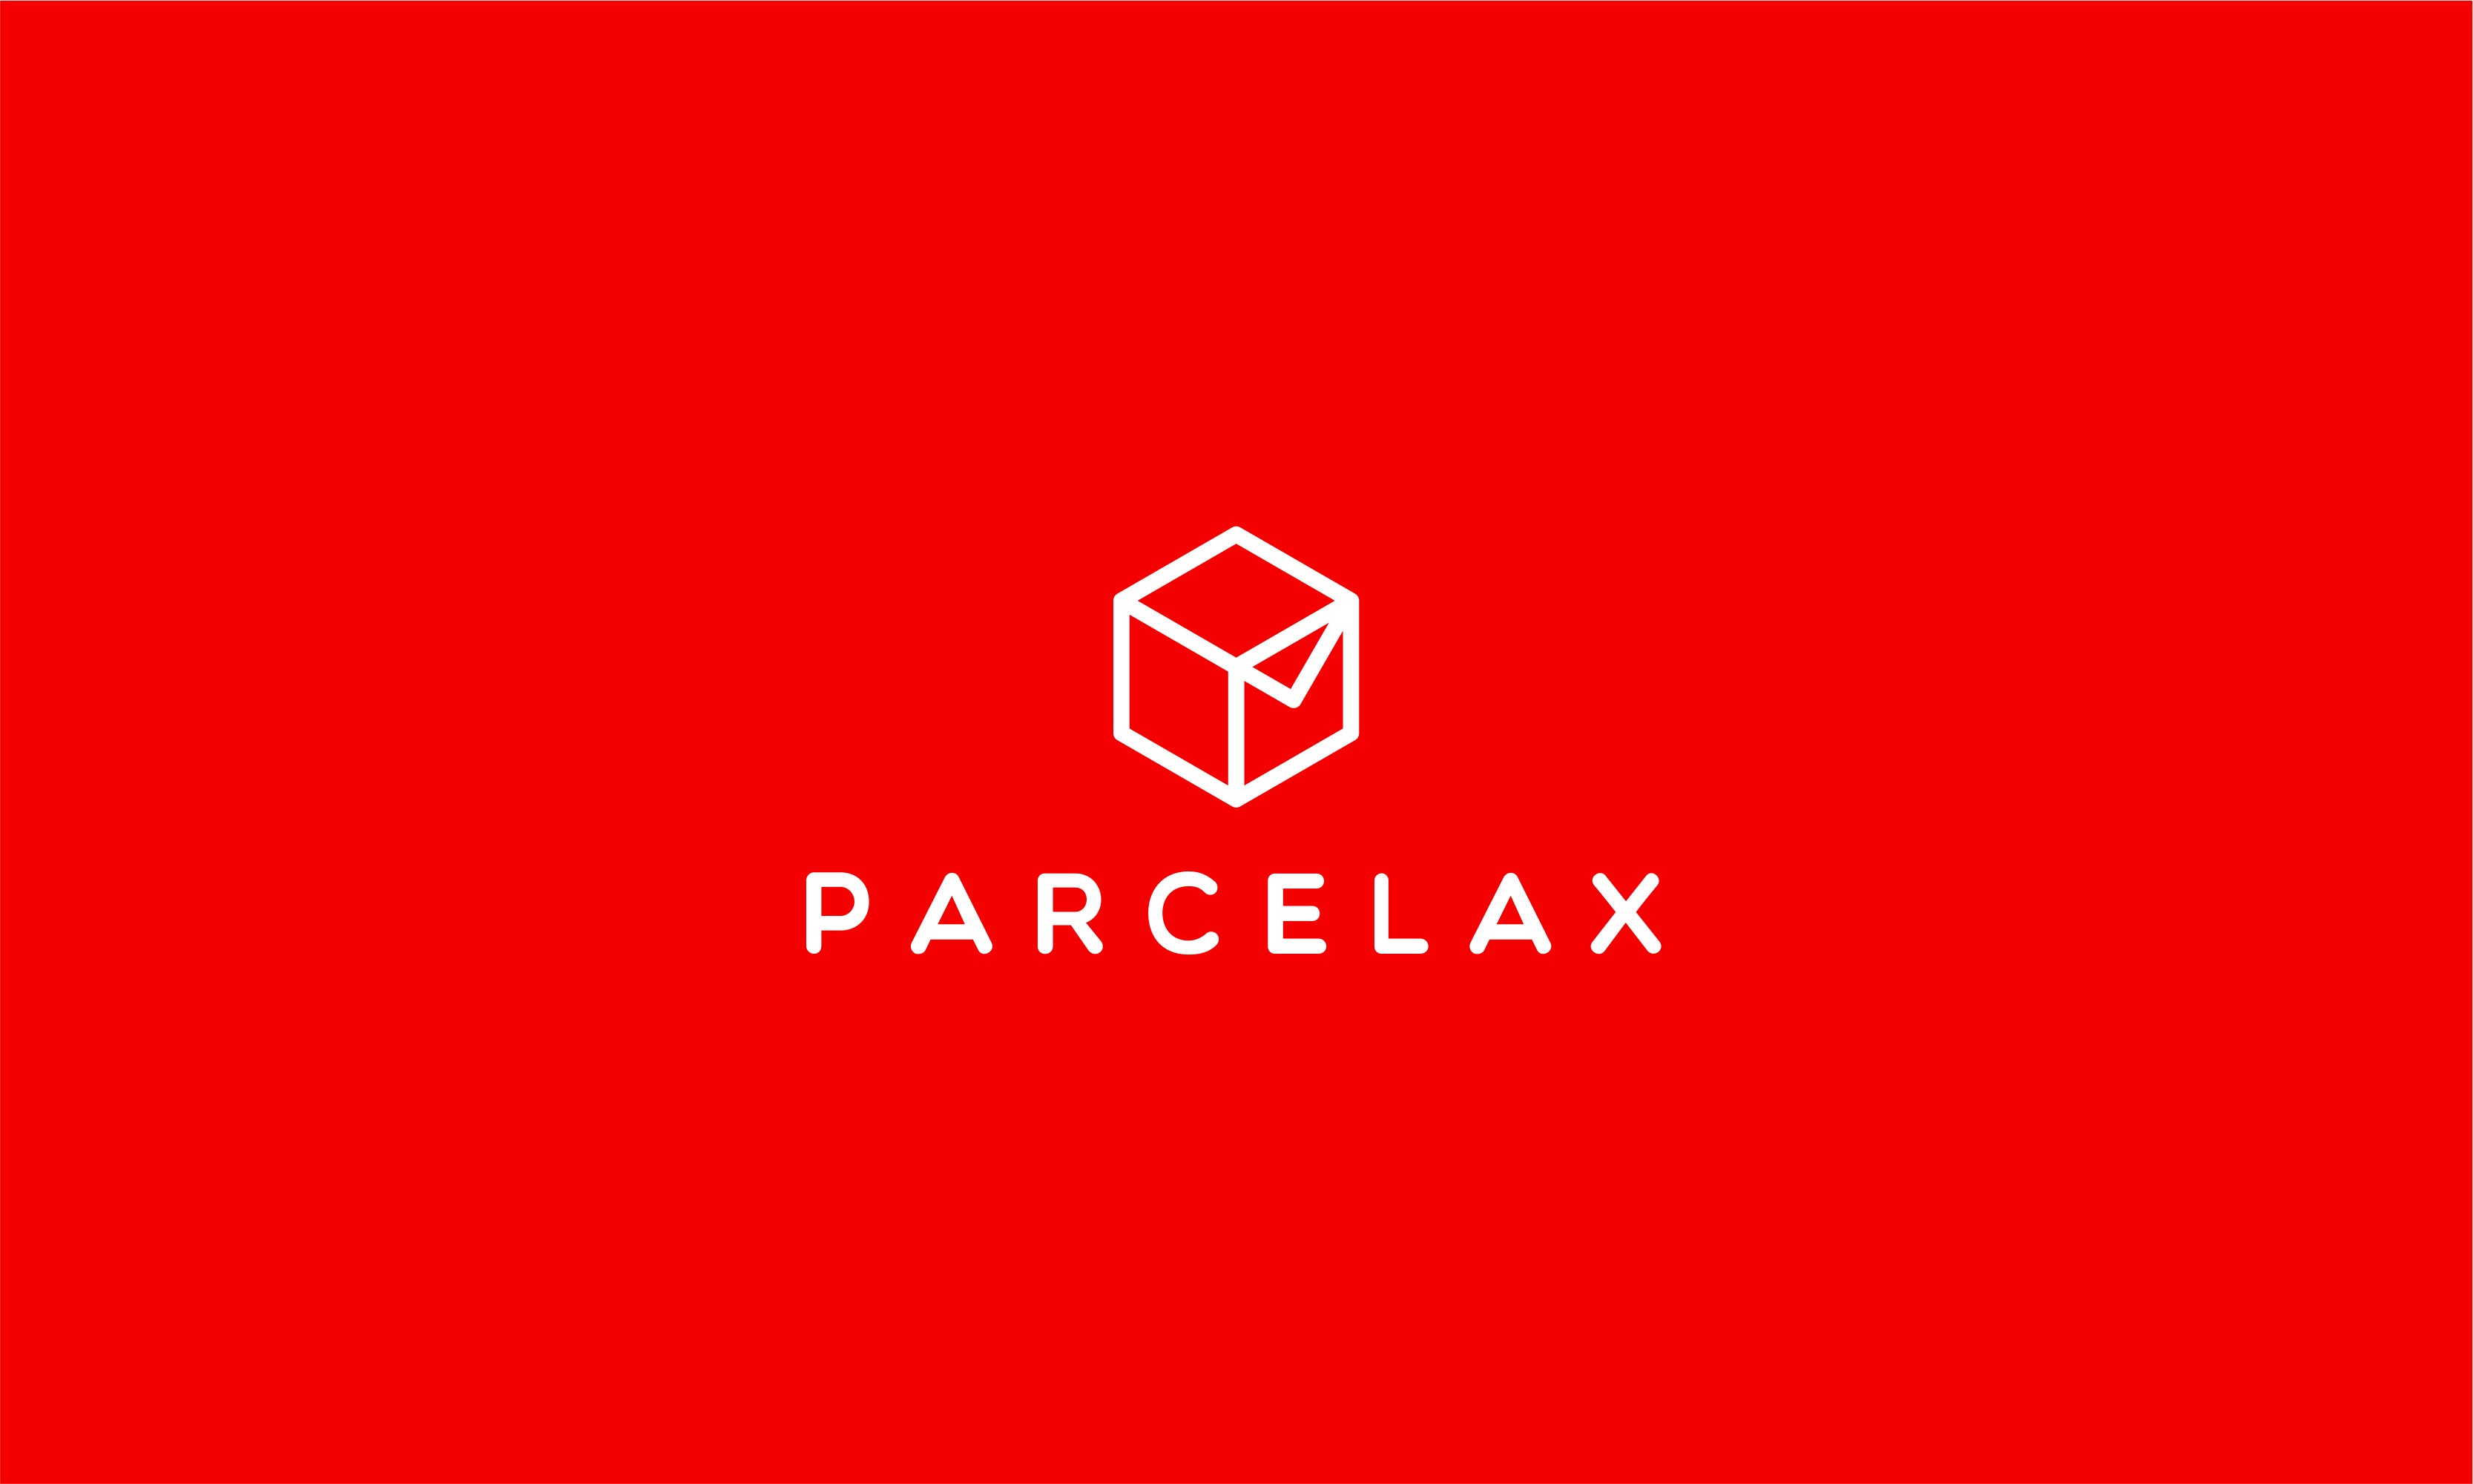 Parcelax - Potential business name for sale